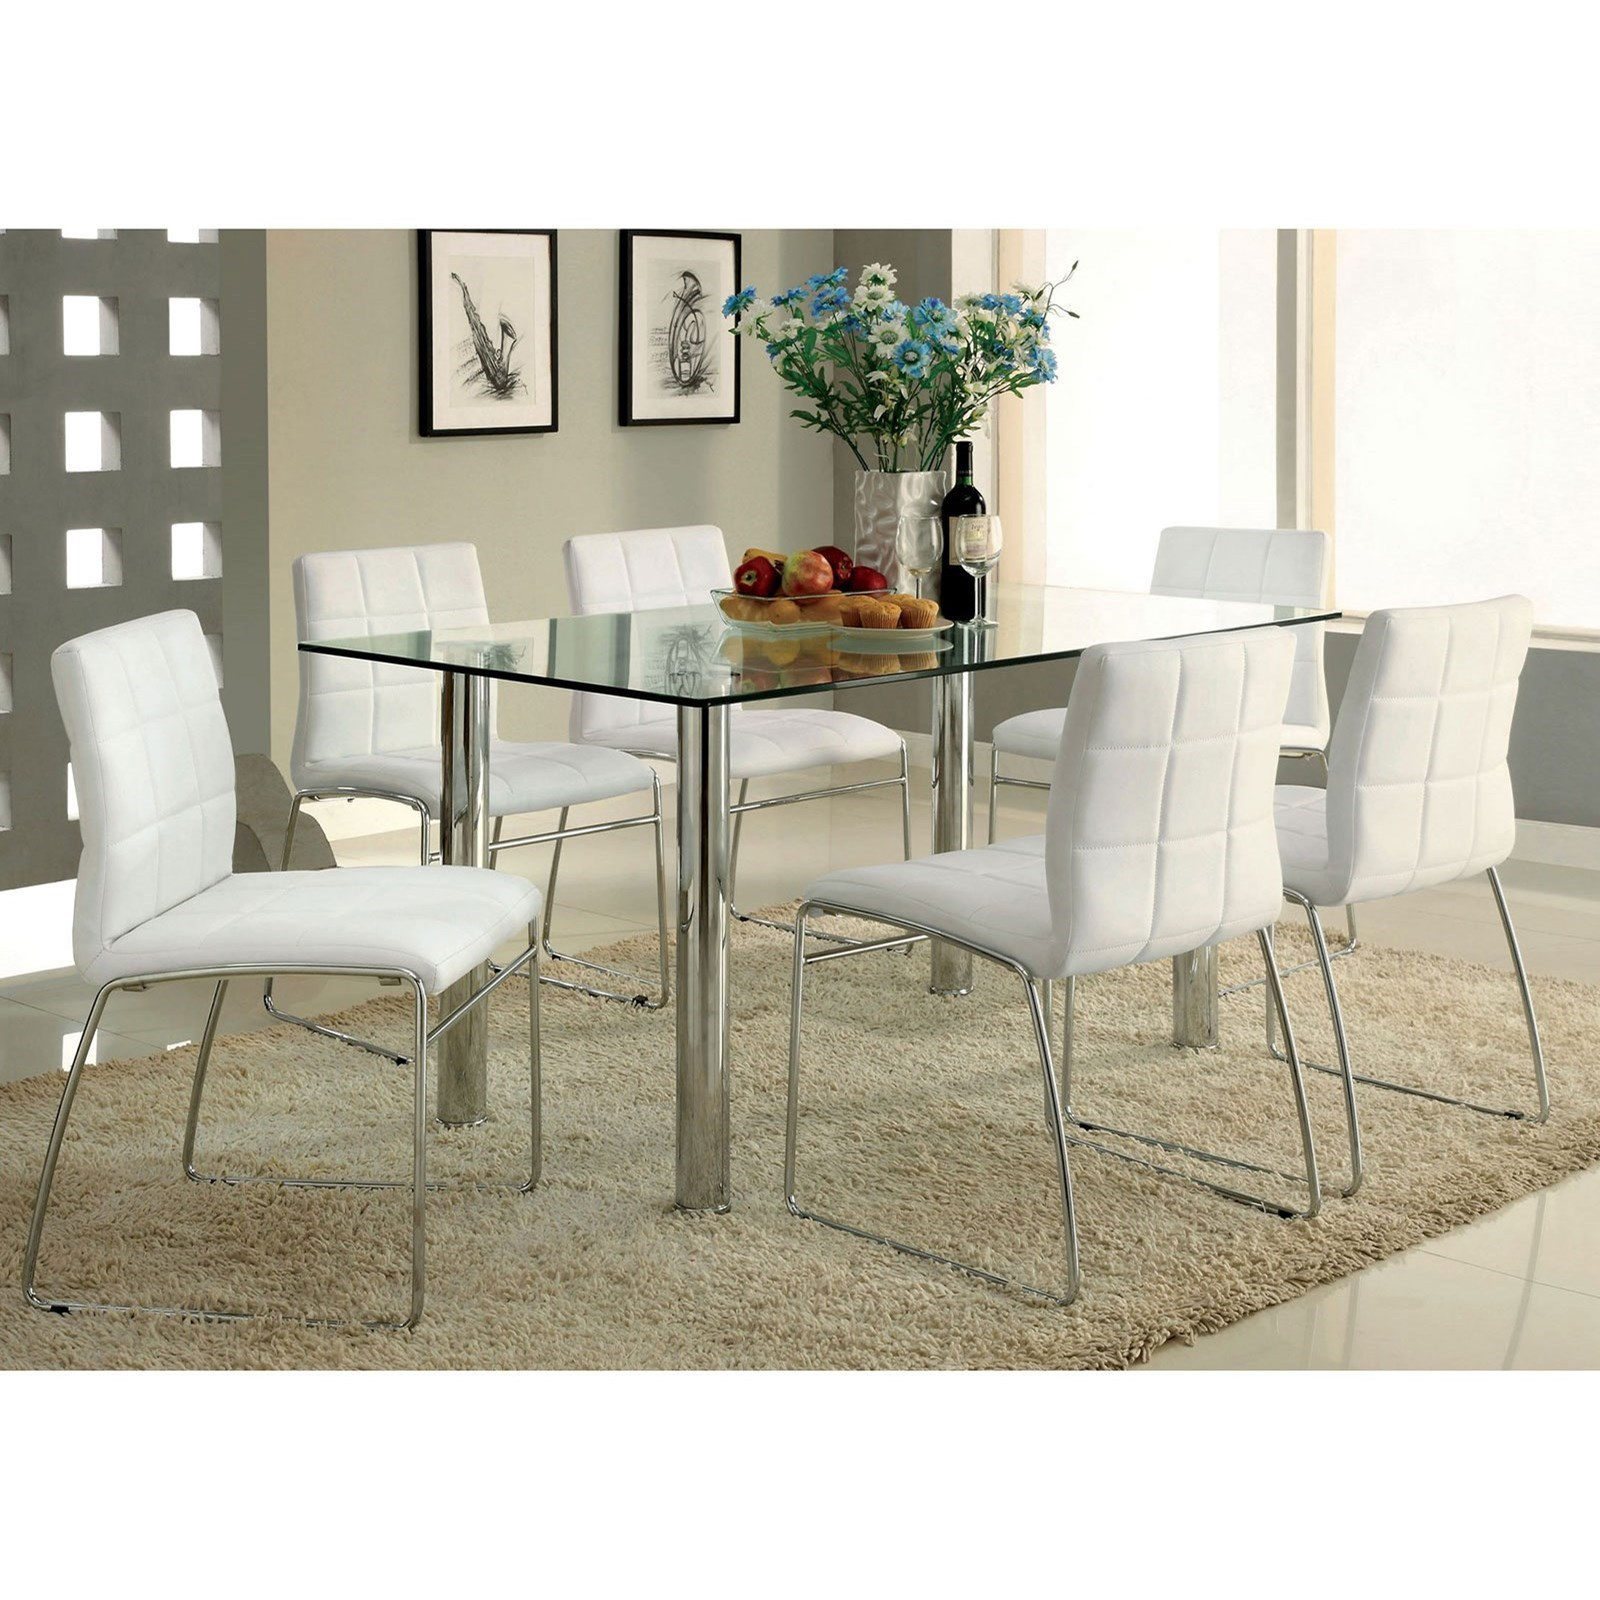 Furniture Of America Oahu Glass Top Dining Table